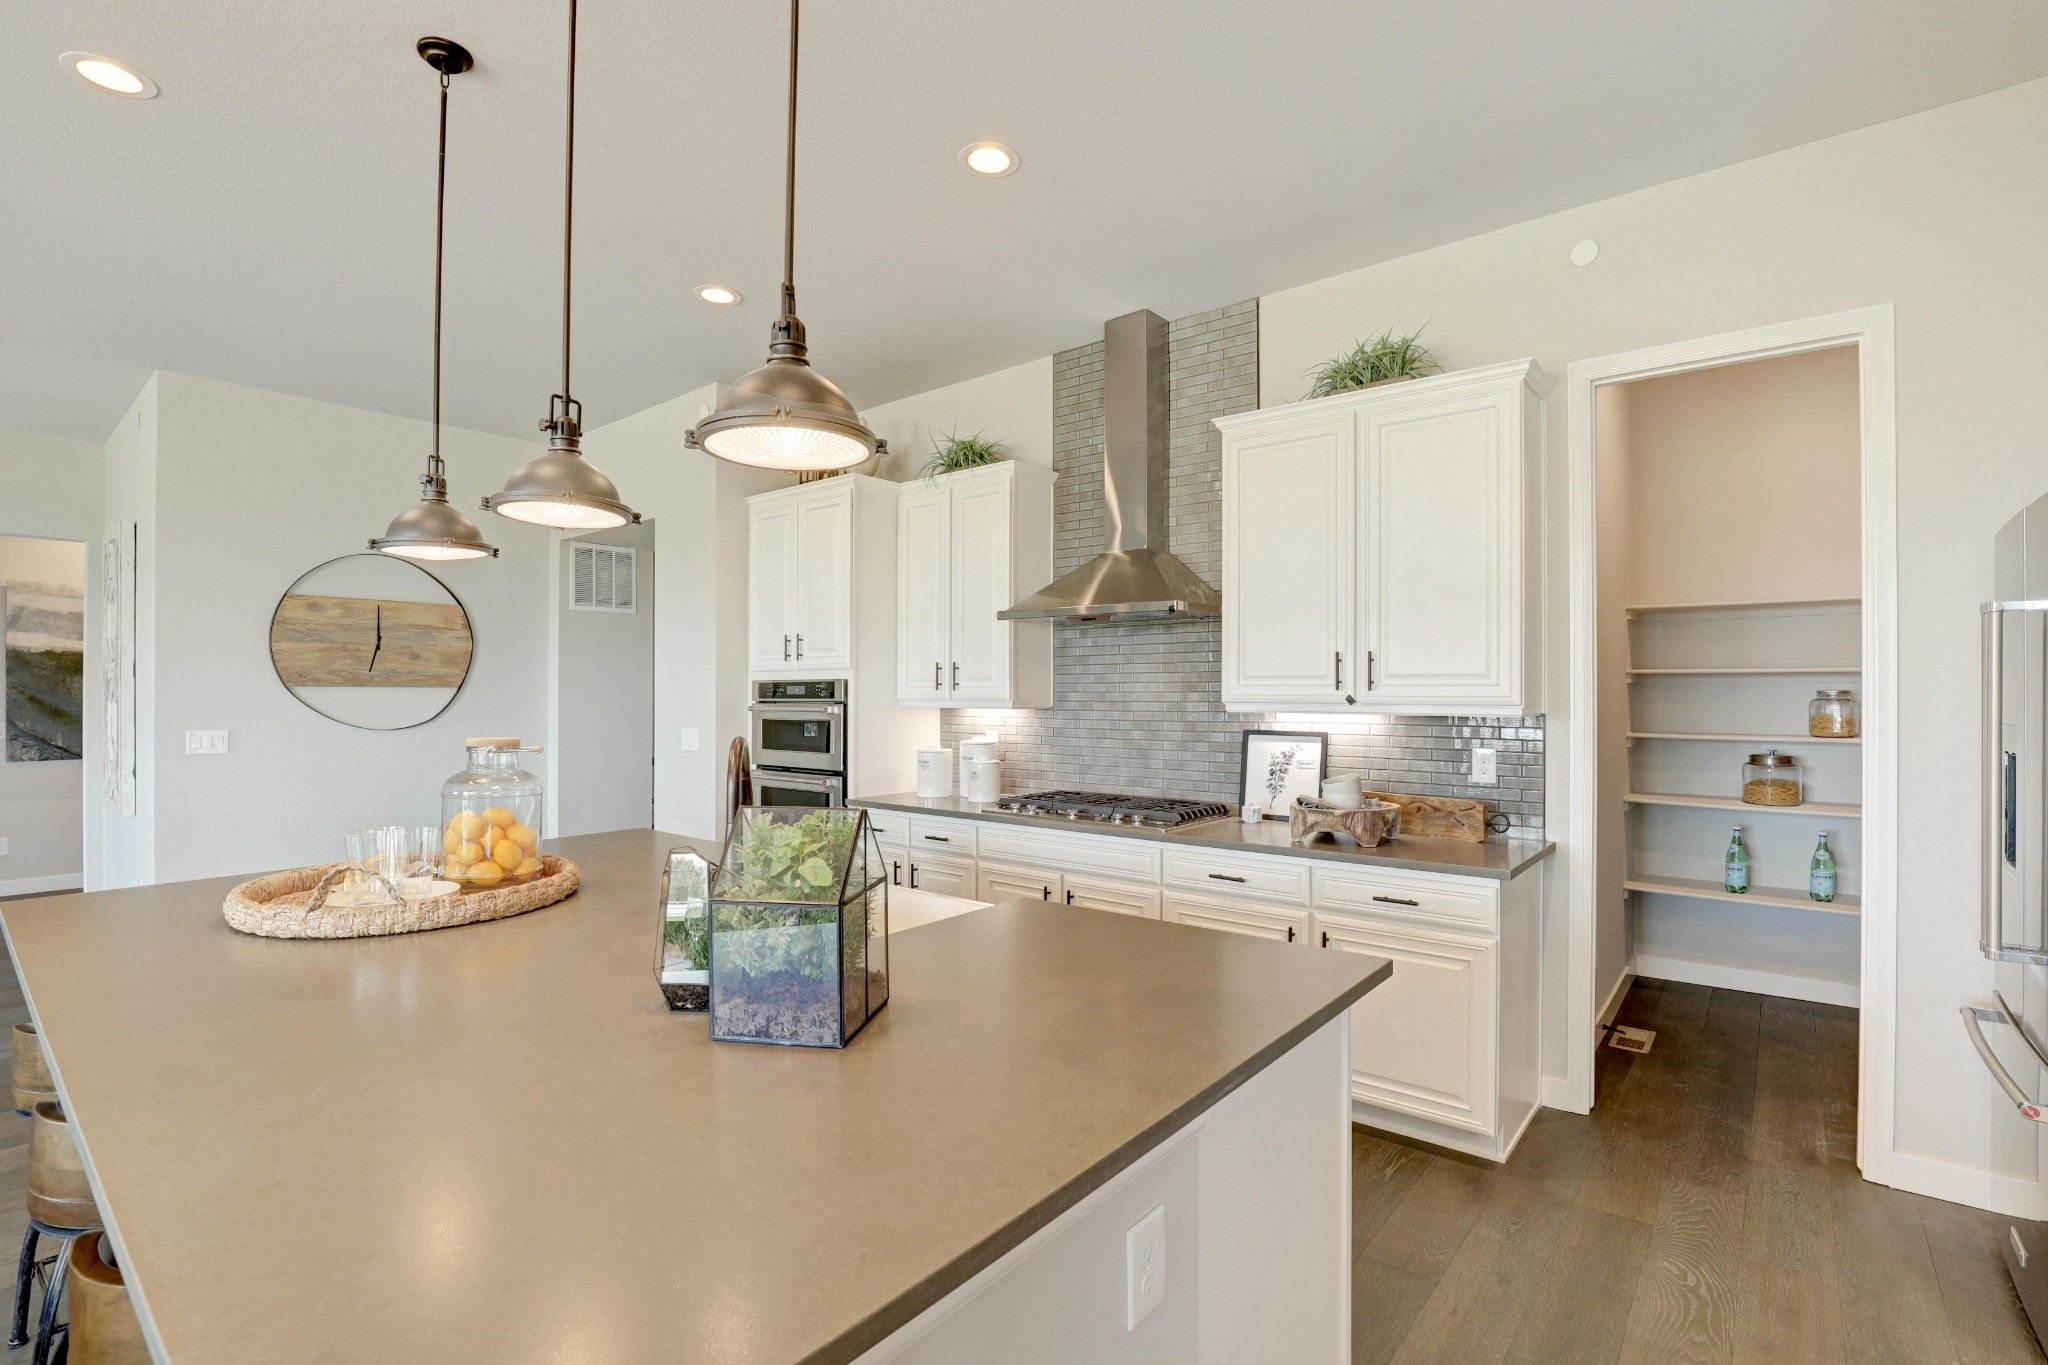 Kitchen featured in the Penrose - Saddler Ridge By RichfieldHomes in Fort Collins-Loveland, CO